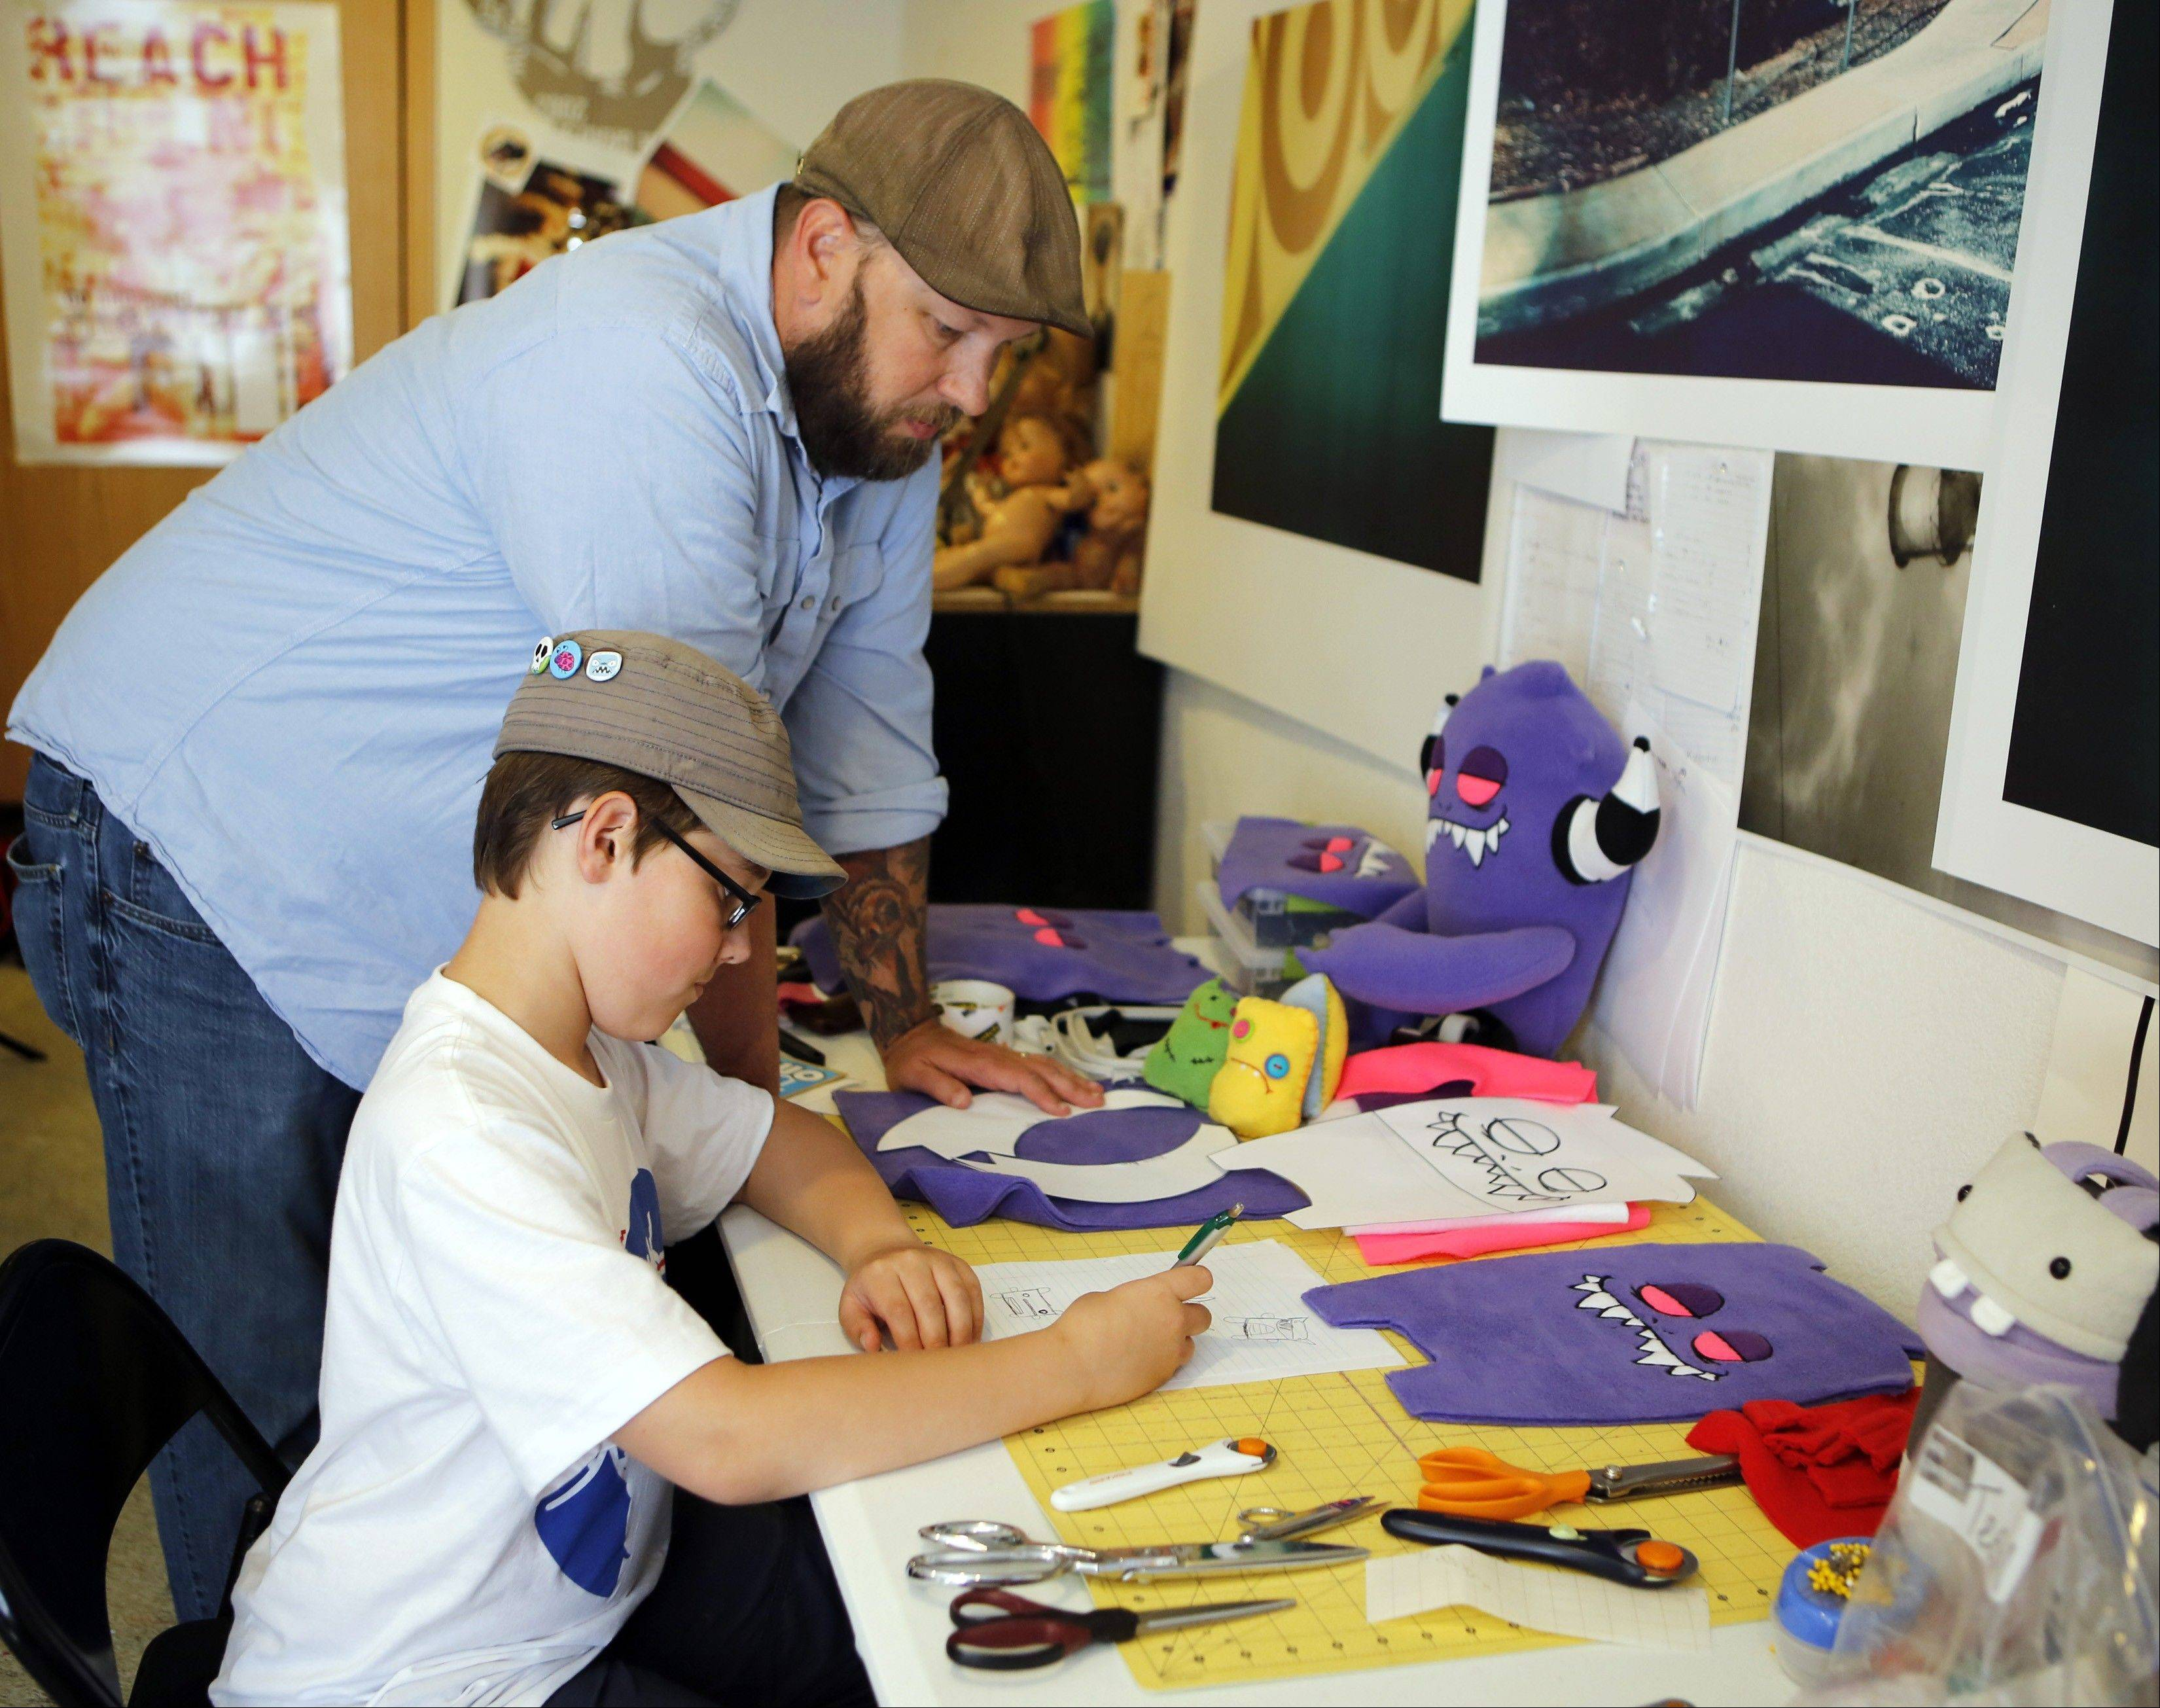 Ray Tollison looks over the shoulder of his son Sam as he works on a drawing of a monster doll at their home in Fort Collins, Colo. The Tollisons launched Monster to Love, a company that makes plush monster toys.